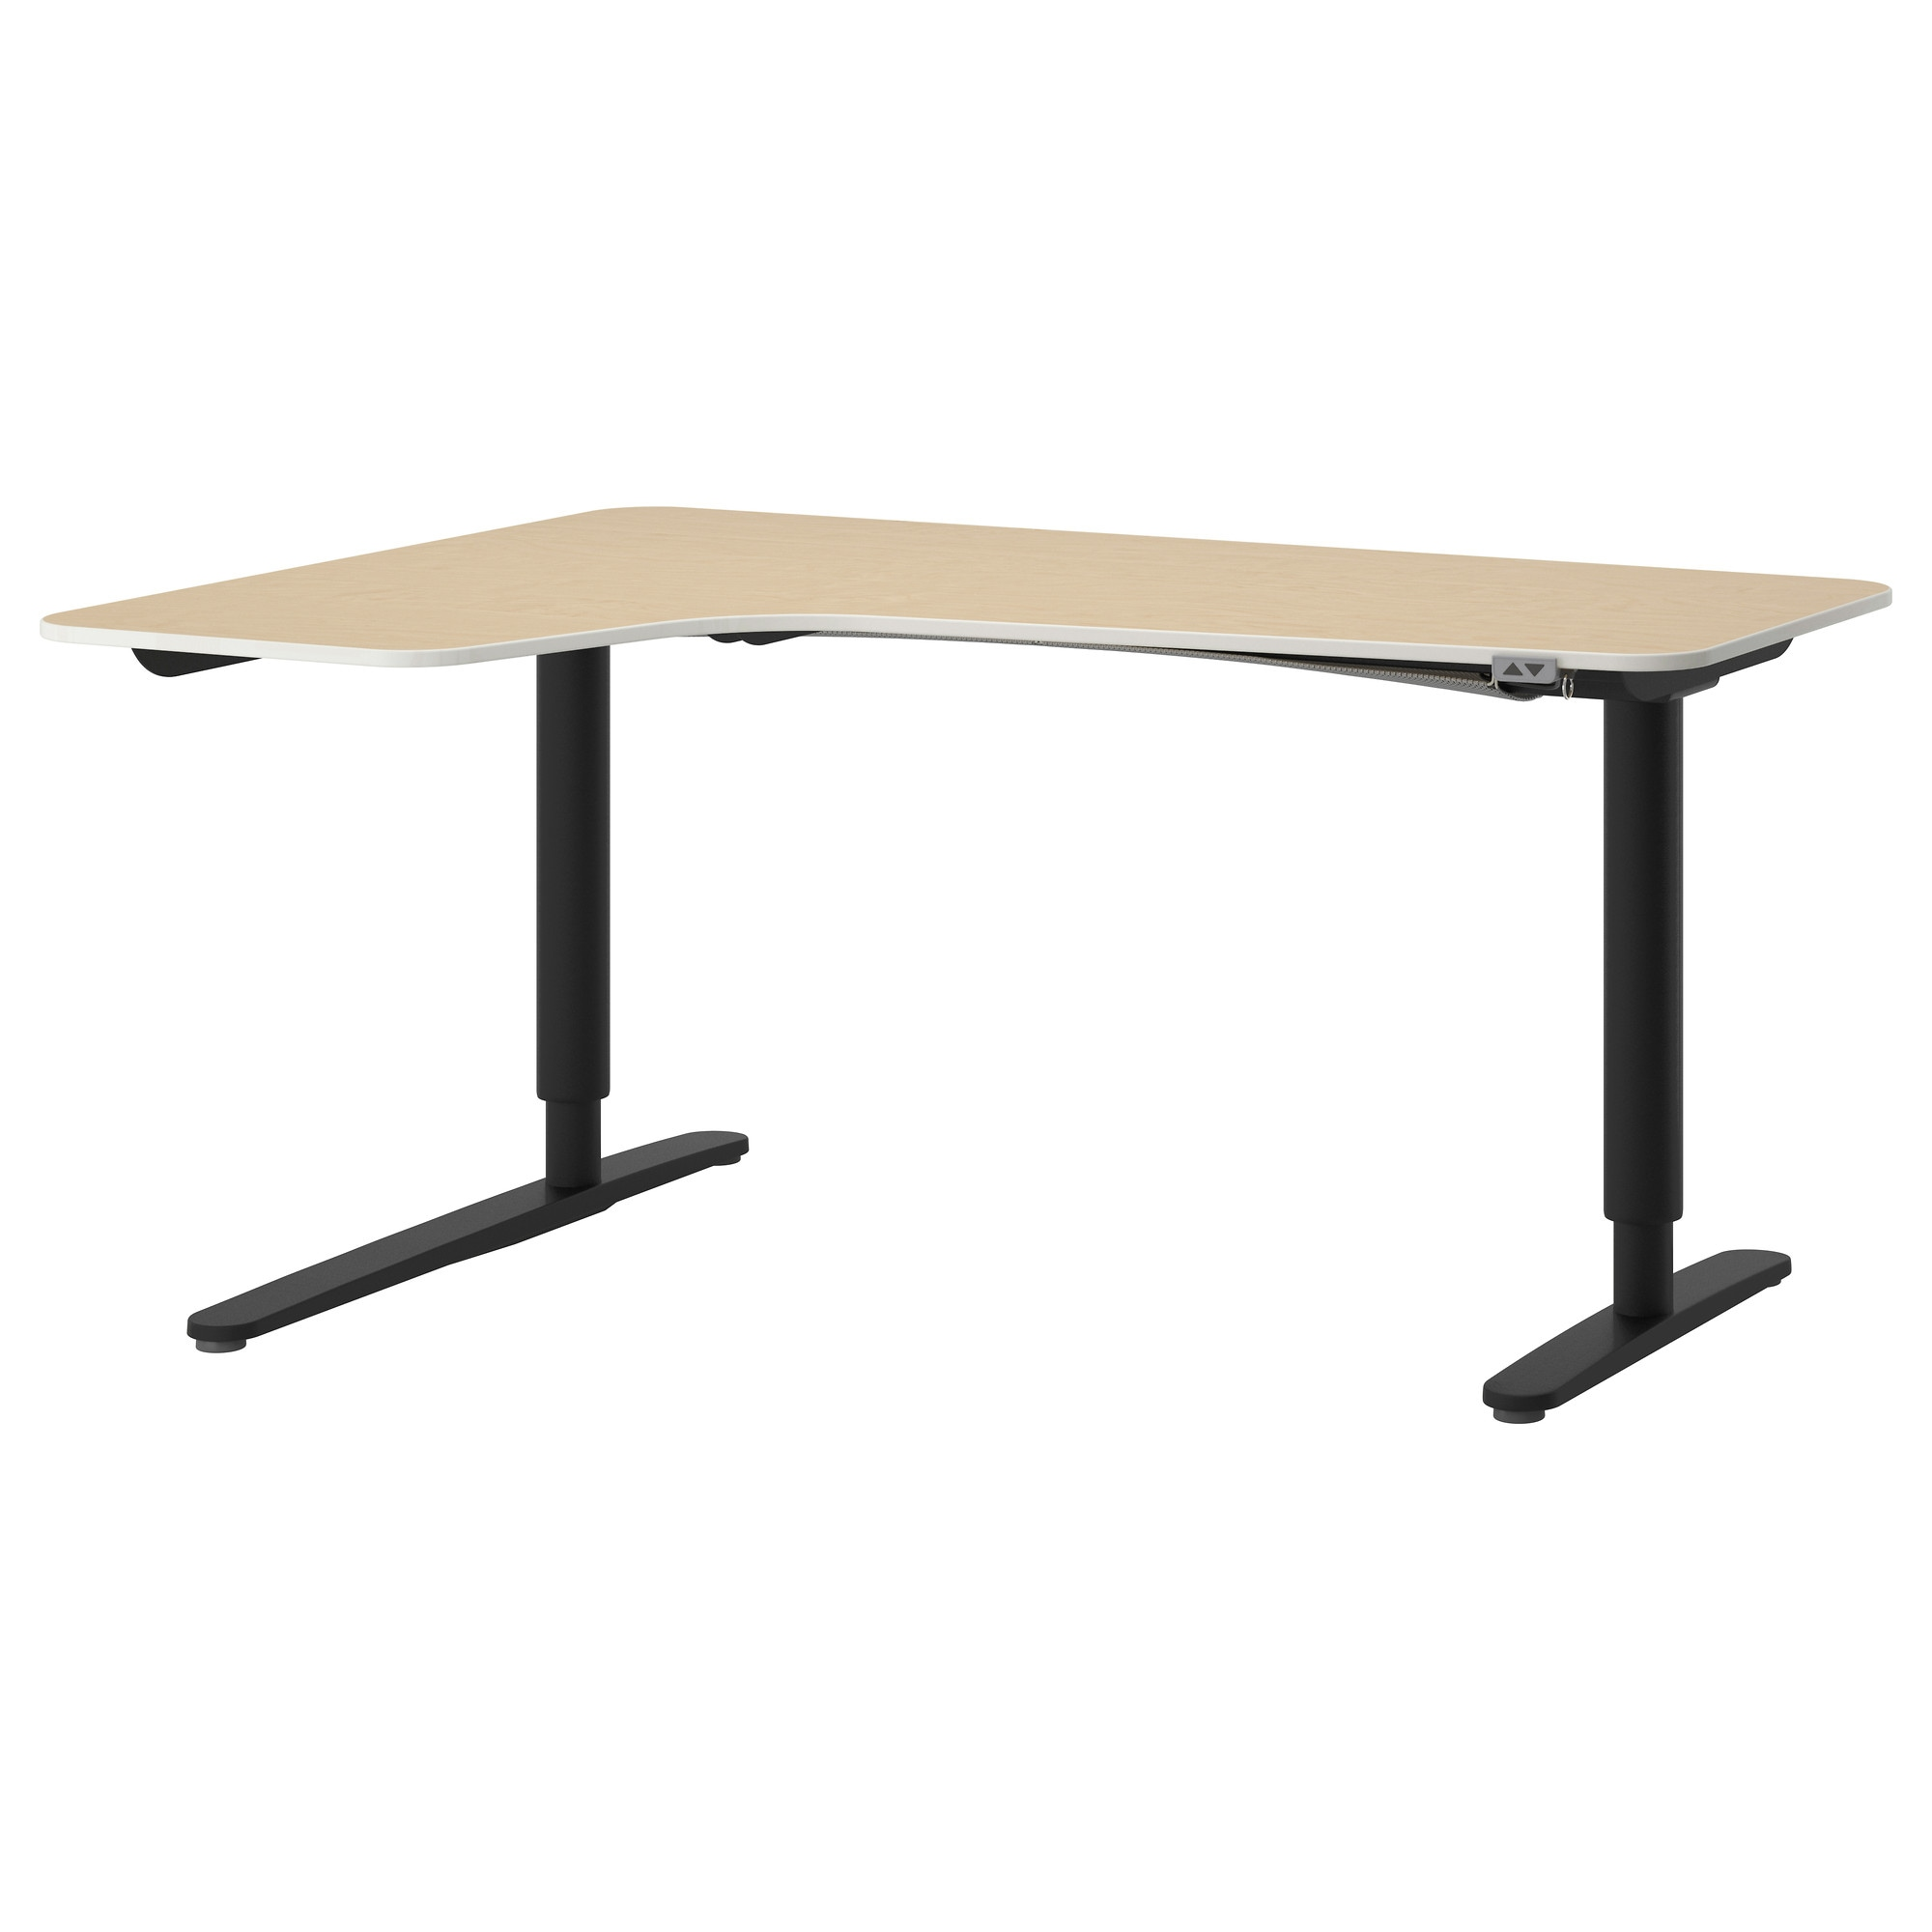 Gallery Image of Corner Desks Ikea